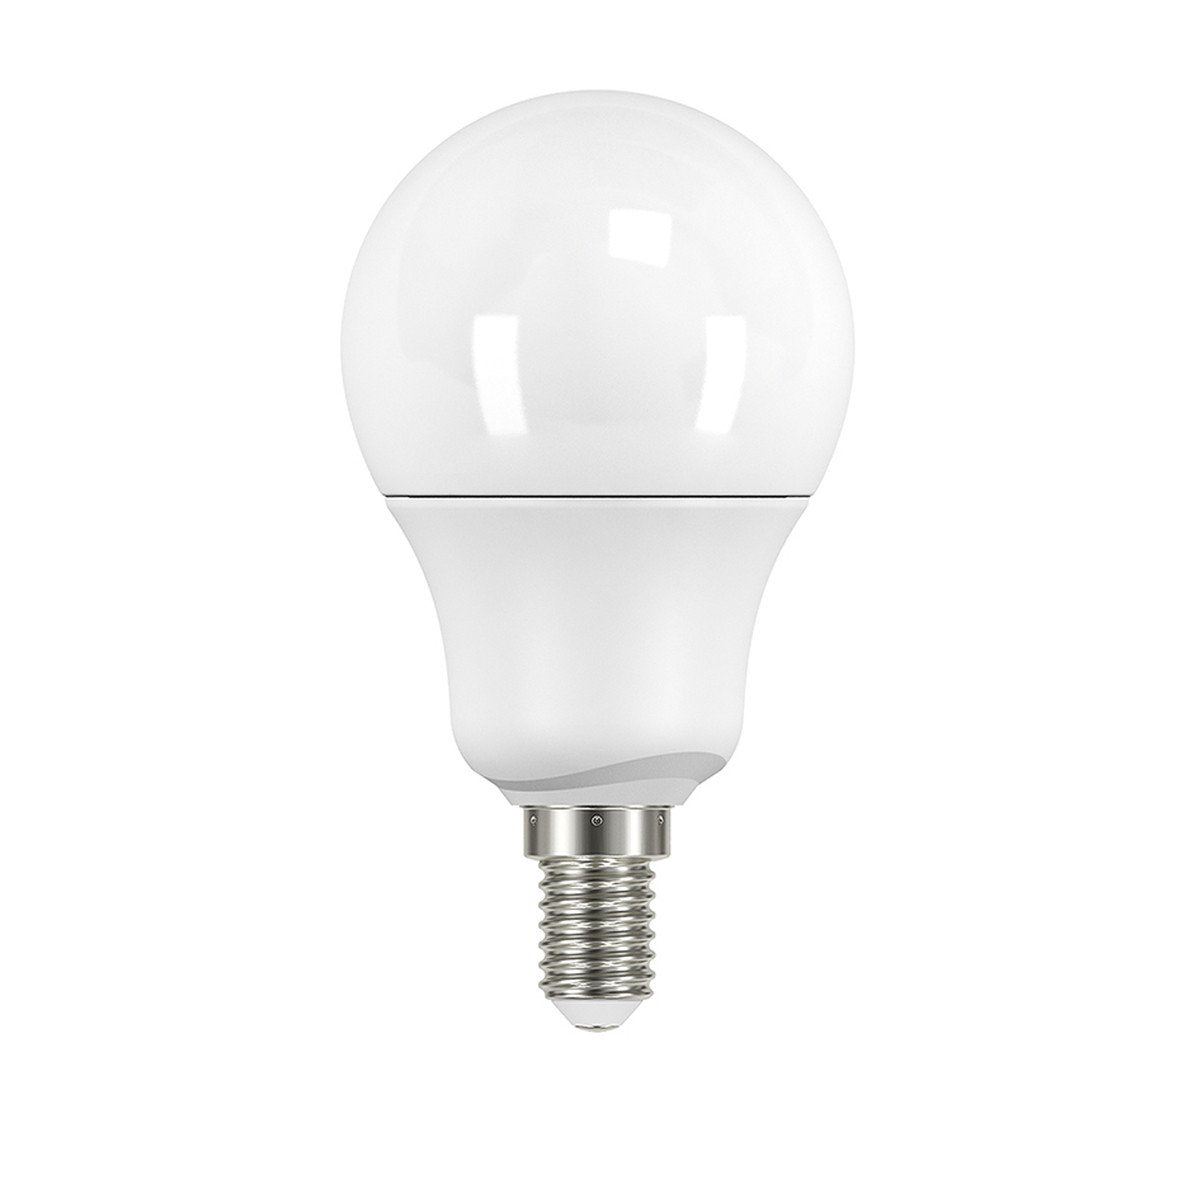 Touch Lamp Dimmable 6.8W E14 LED Lamp - London Lighting - 1